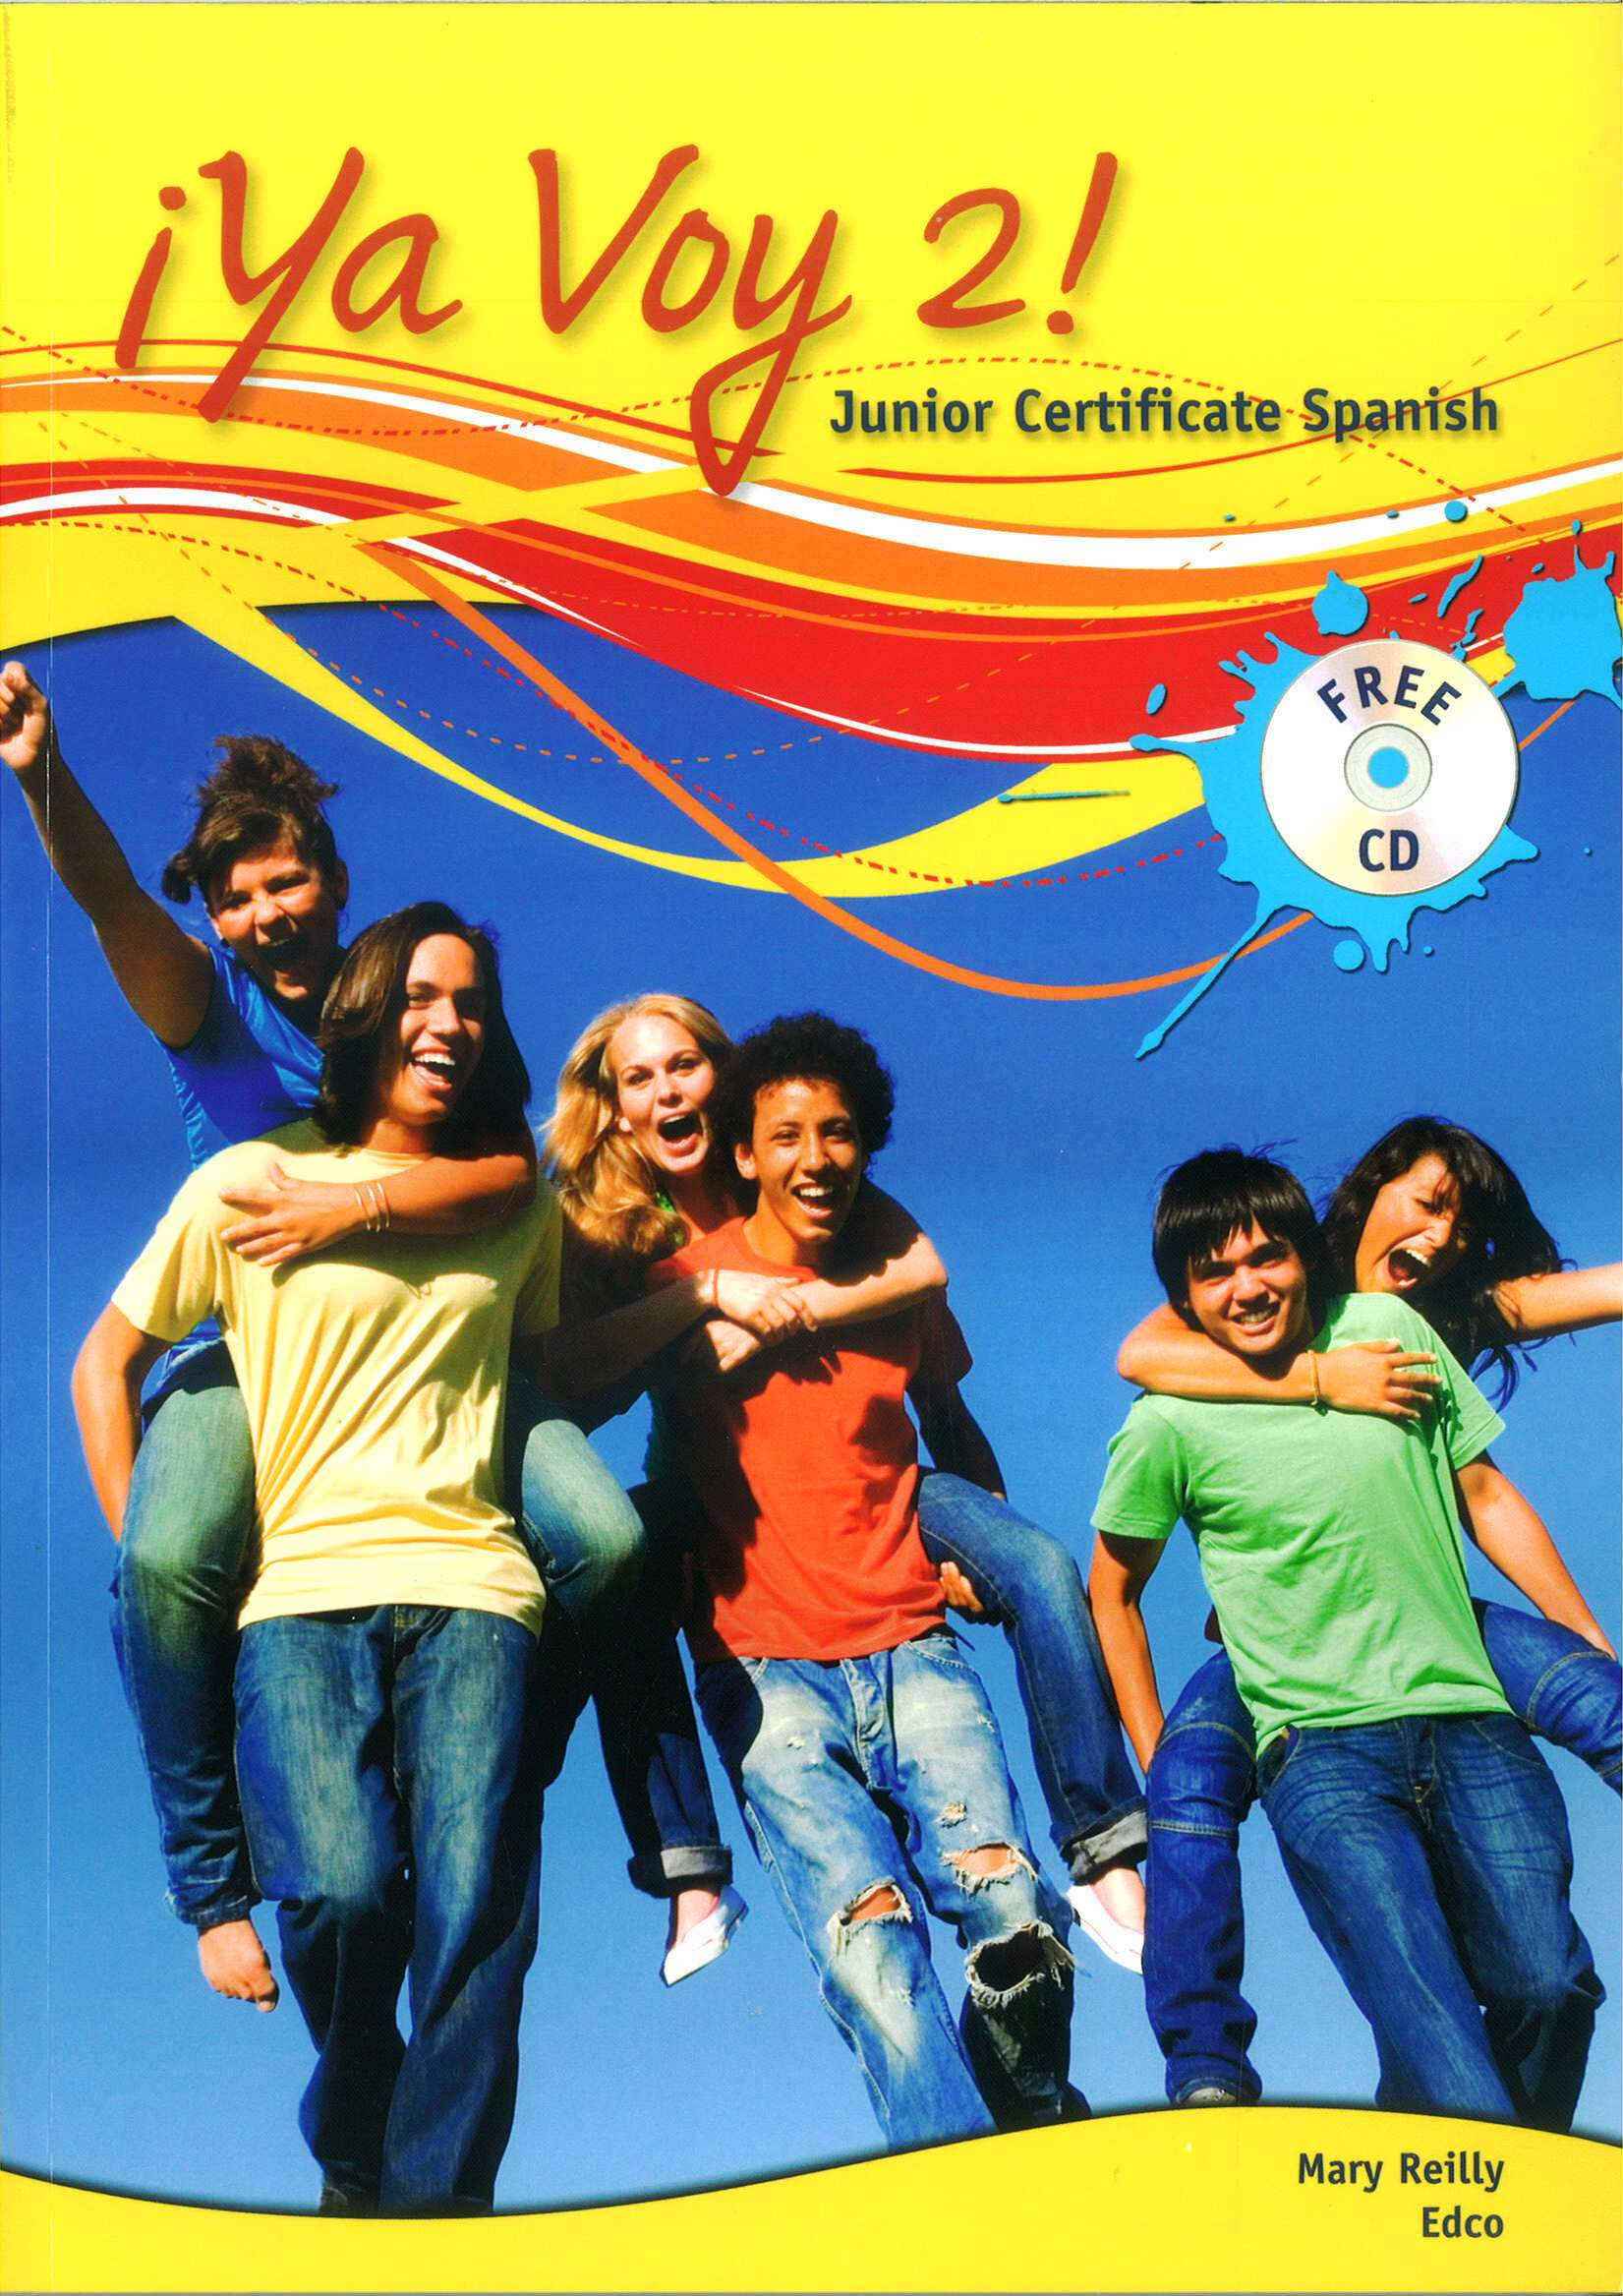 Spanish School Book Cover : Ya voy junior certificate spanish textbook